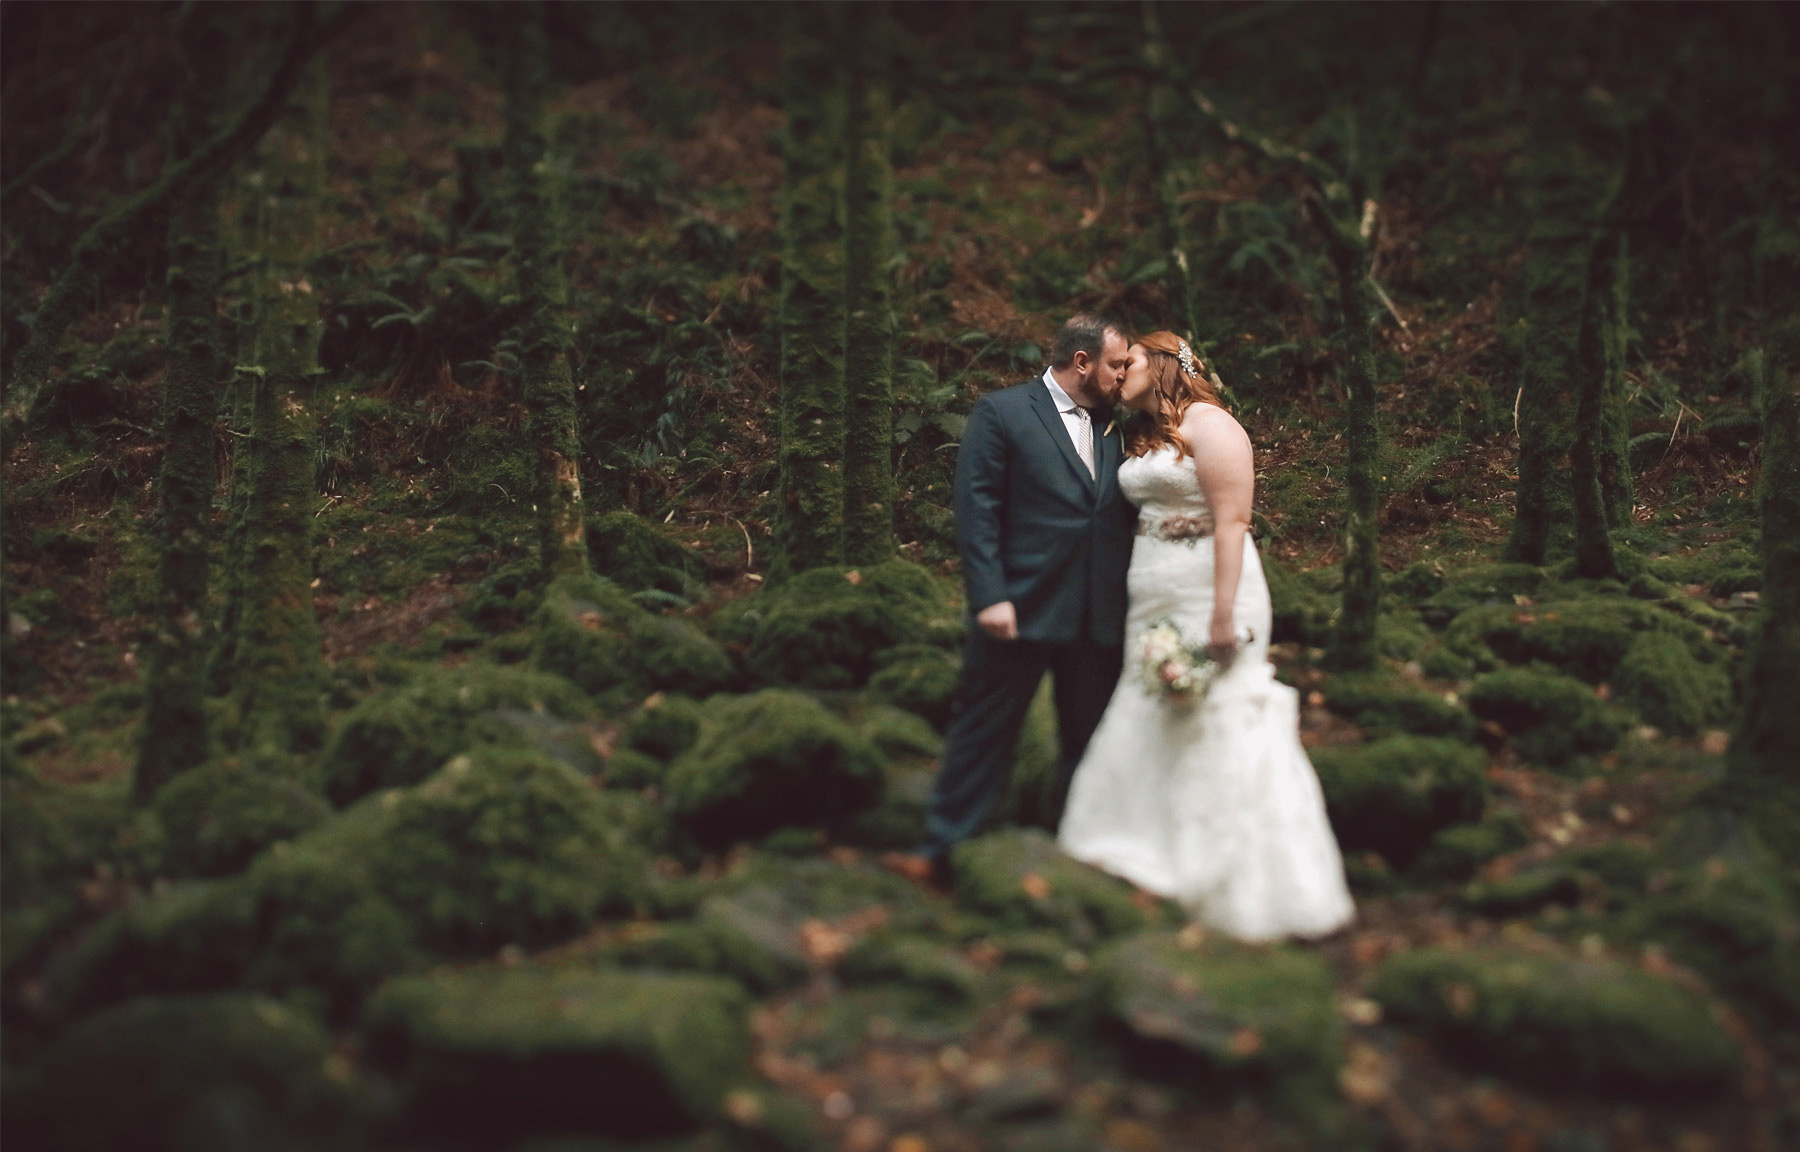 27-Kilarney-Ireland-Wedding-Photographer-by-Andrew-Vick-Photography-Fall-Autumn-Destination-First-Meeting-Look-Bride-Groom-Forest-Woods-Kiss-Vintage-Becca-and-Donal.jpg